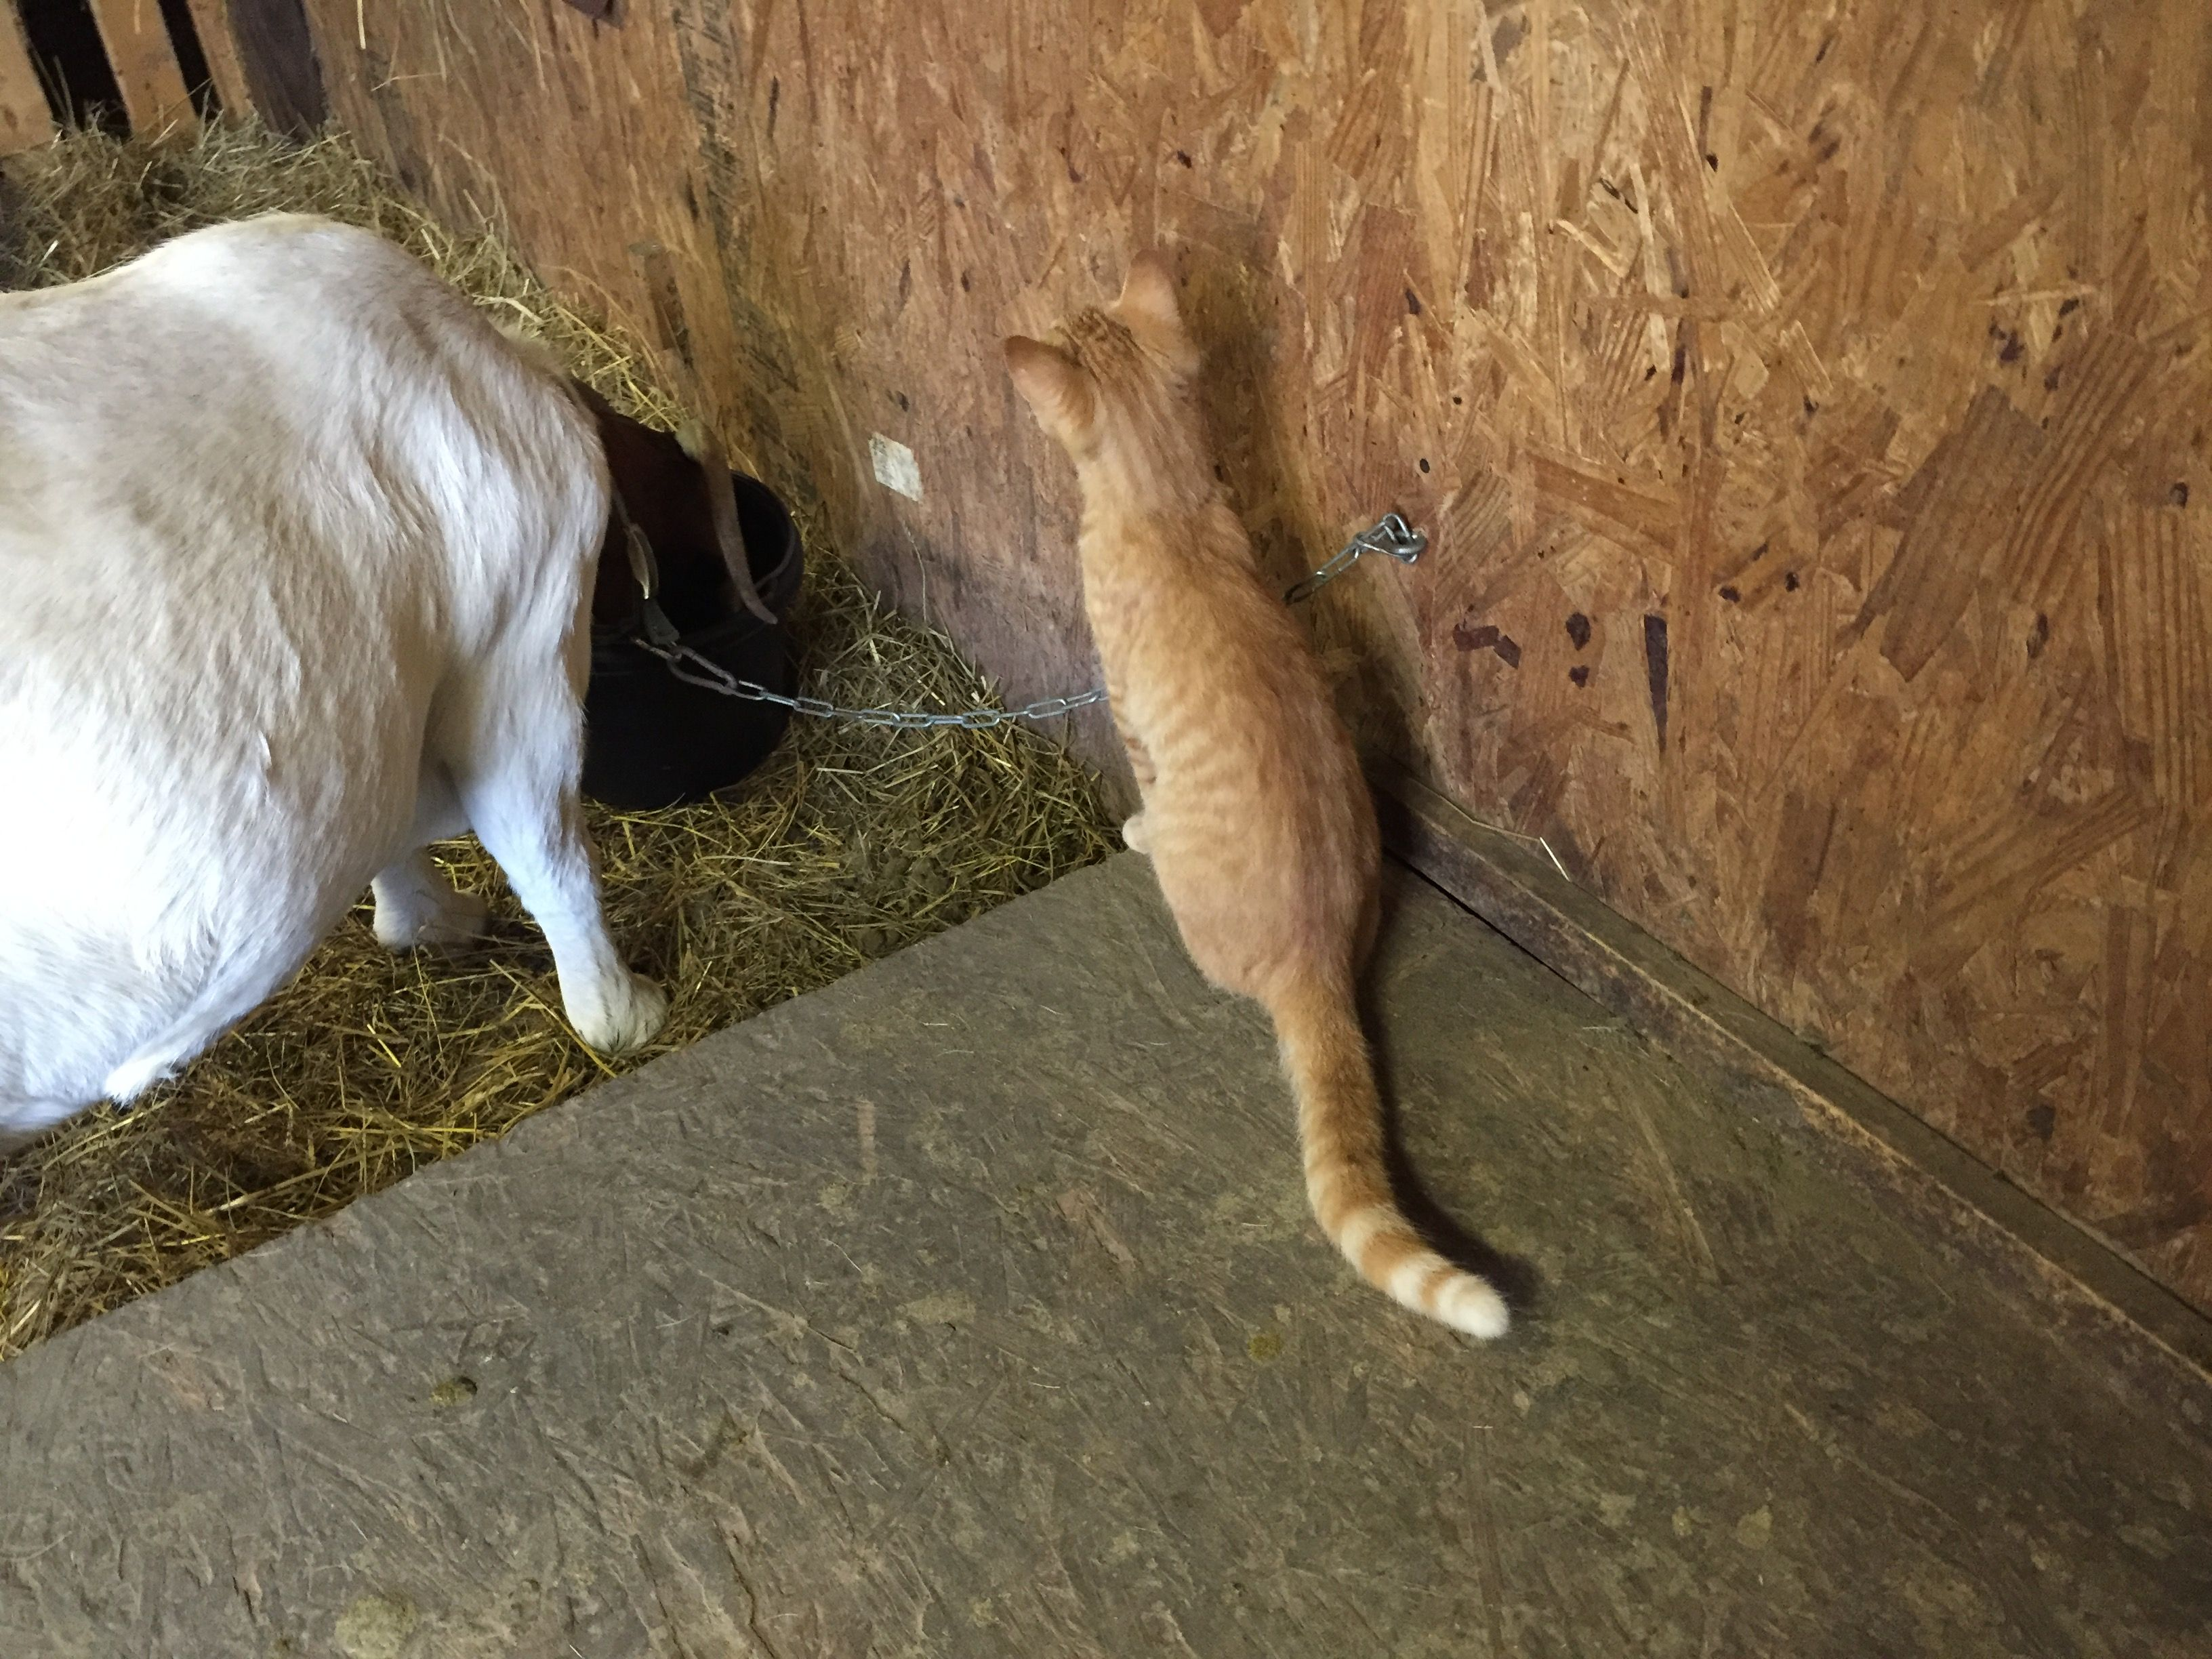 It's Monday so what you got there? monday kitty goats